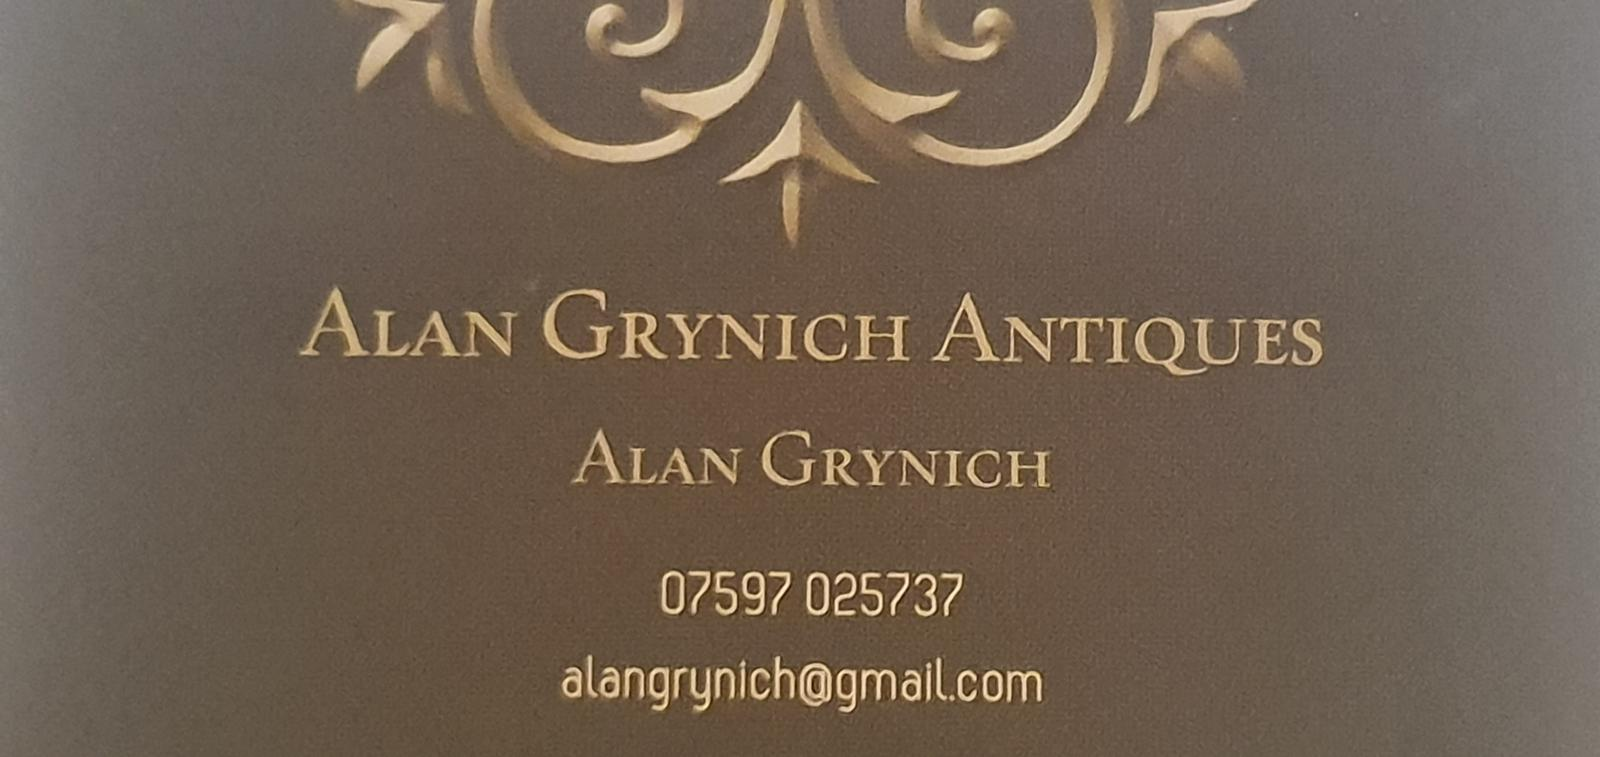 Alan Grynich Antiques image (1 of 1)